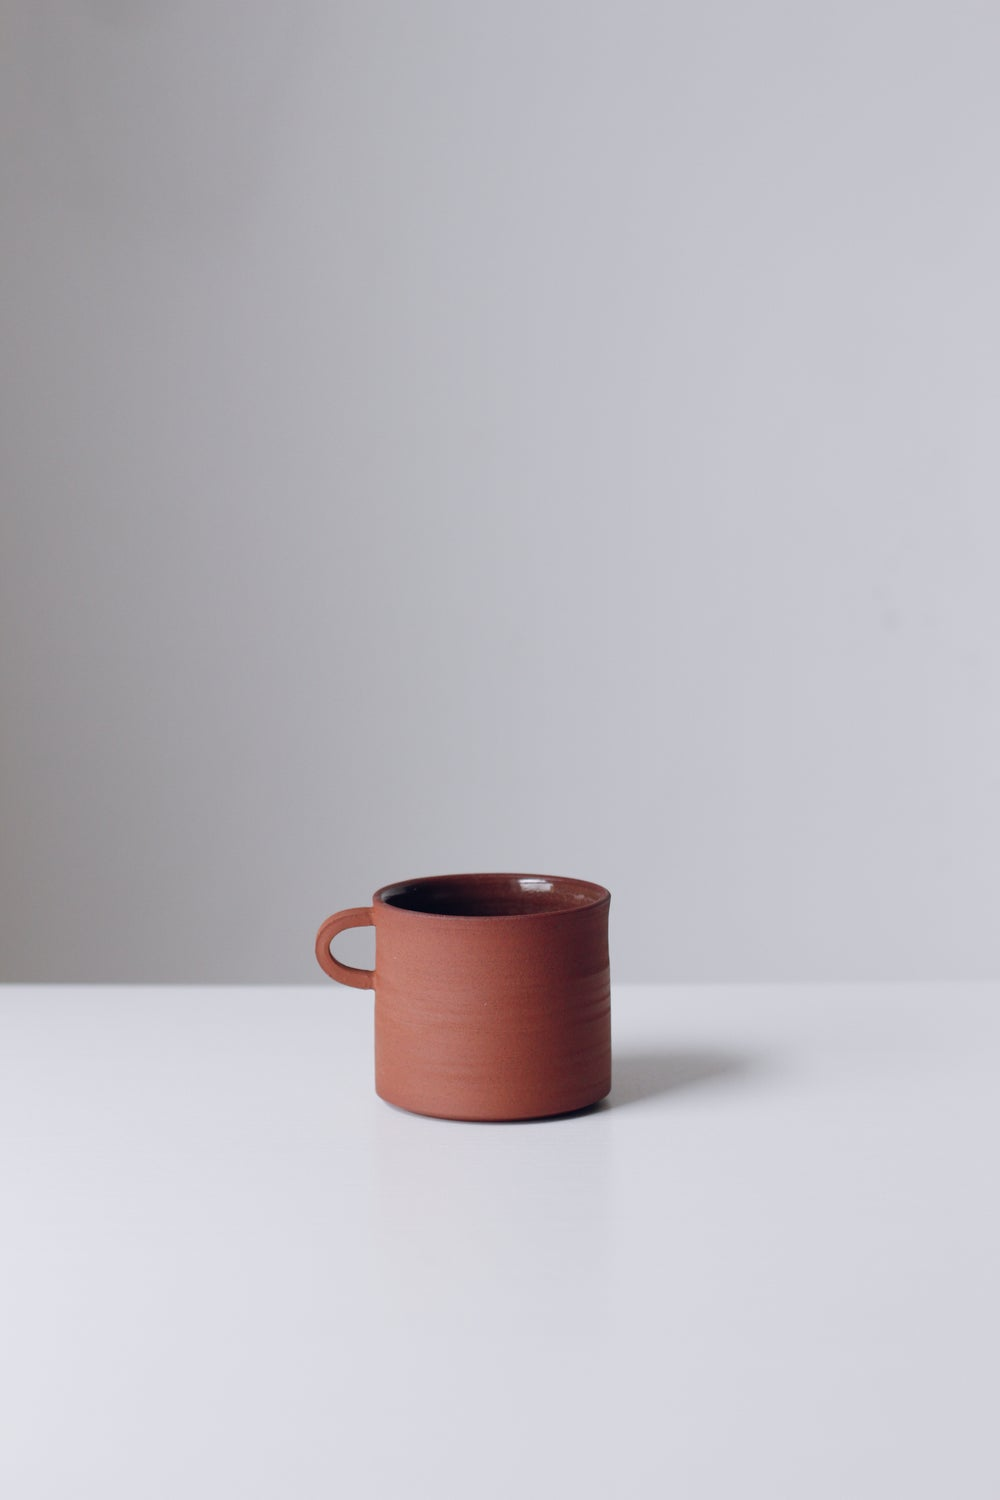 Image of Terracotta Cup with Handle